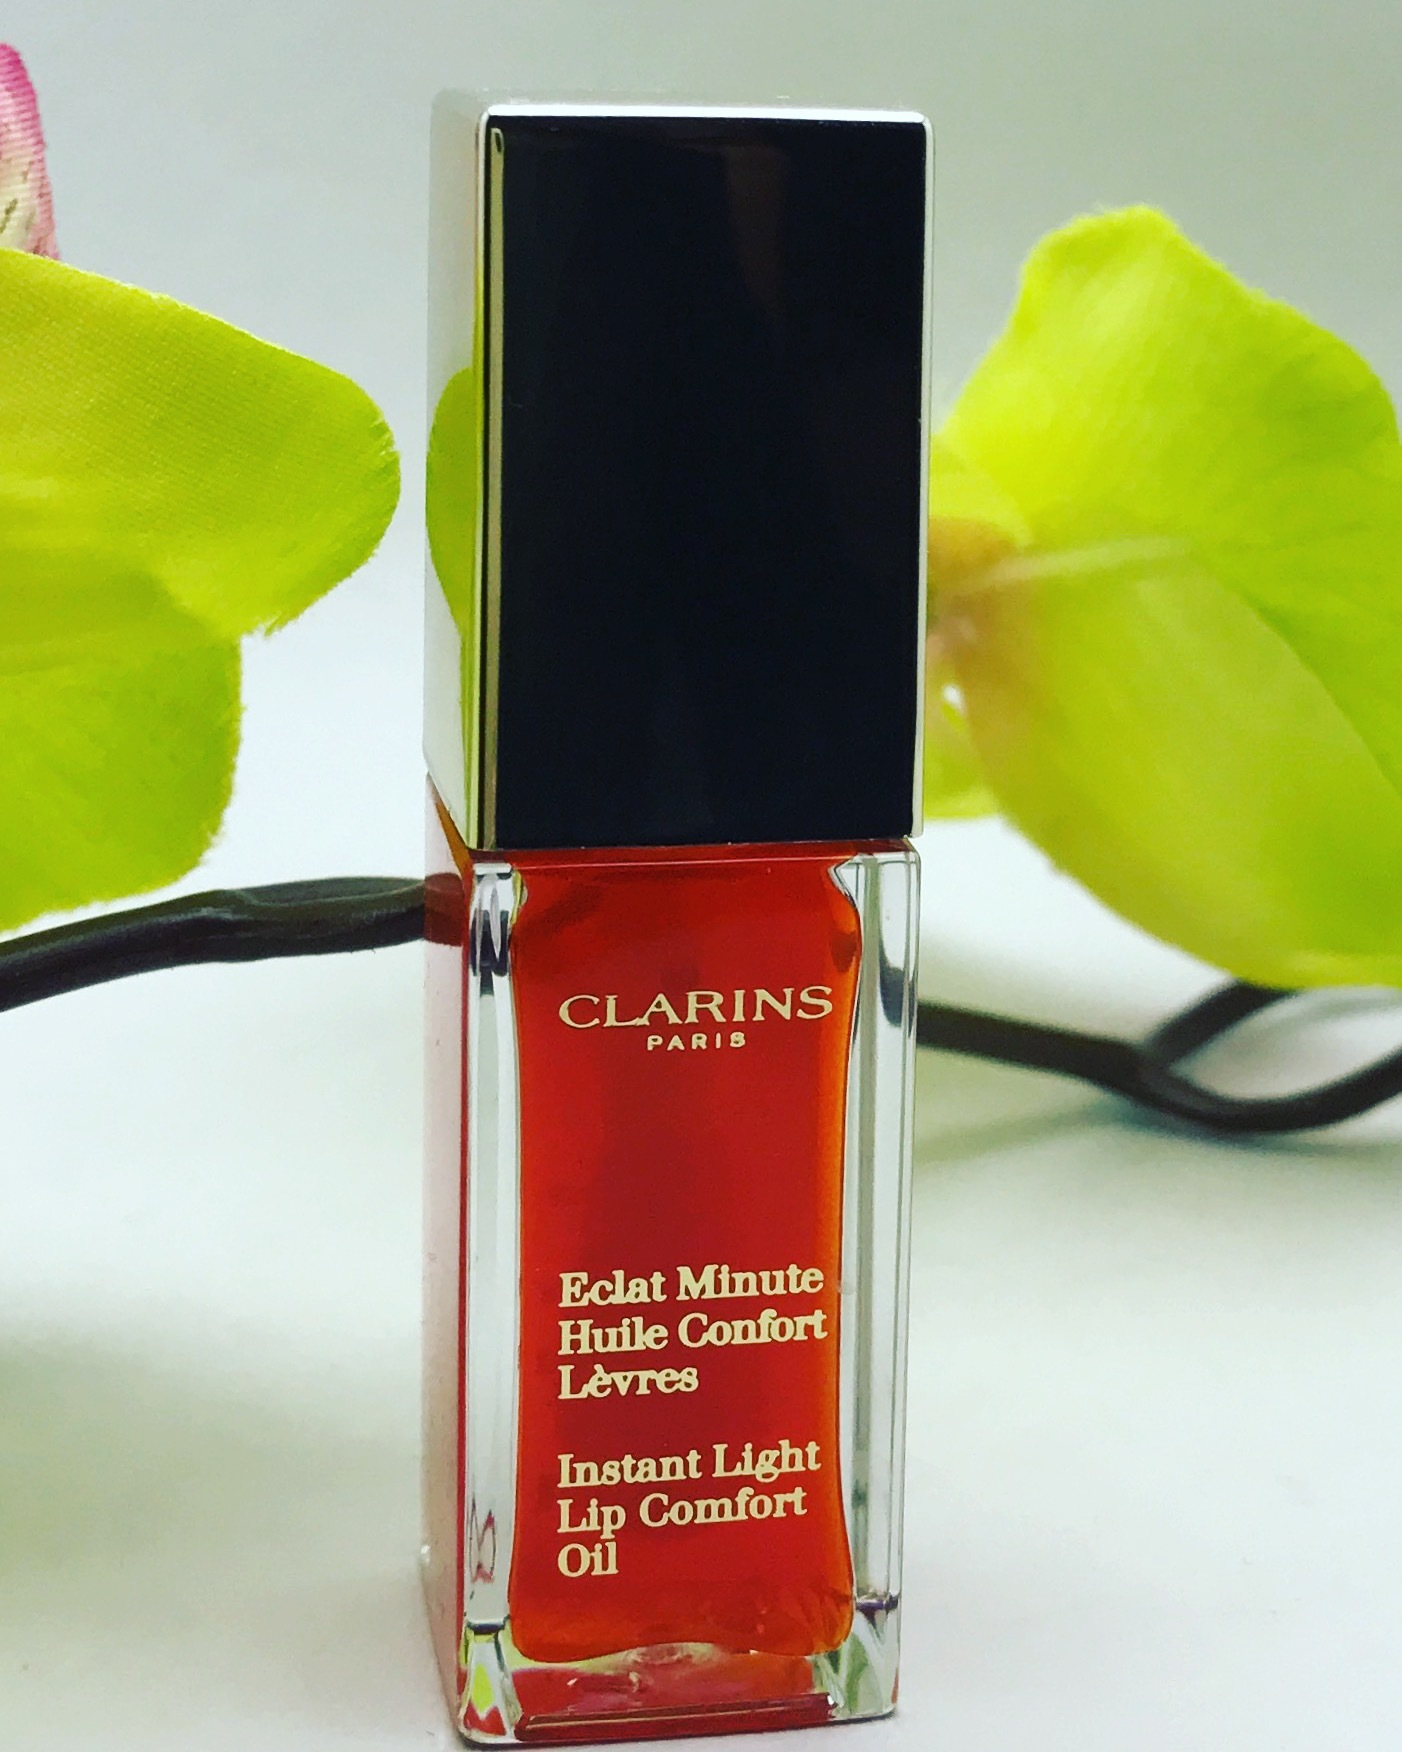 Clarins Instant Light Lip Comfort Oil Reviews In Lip Gloss